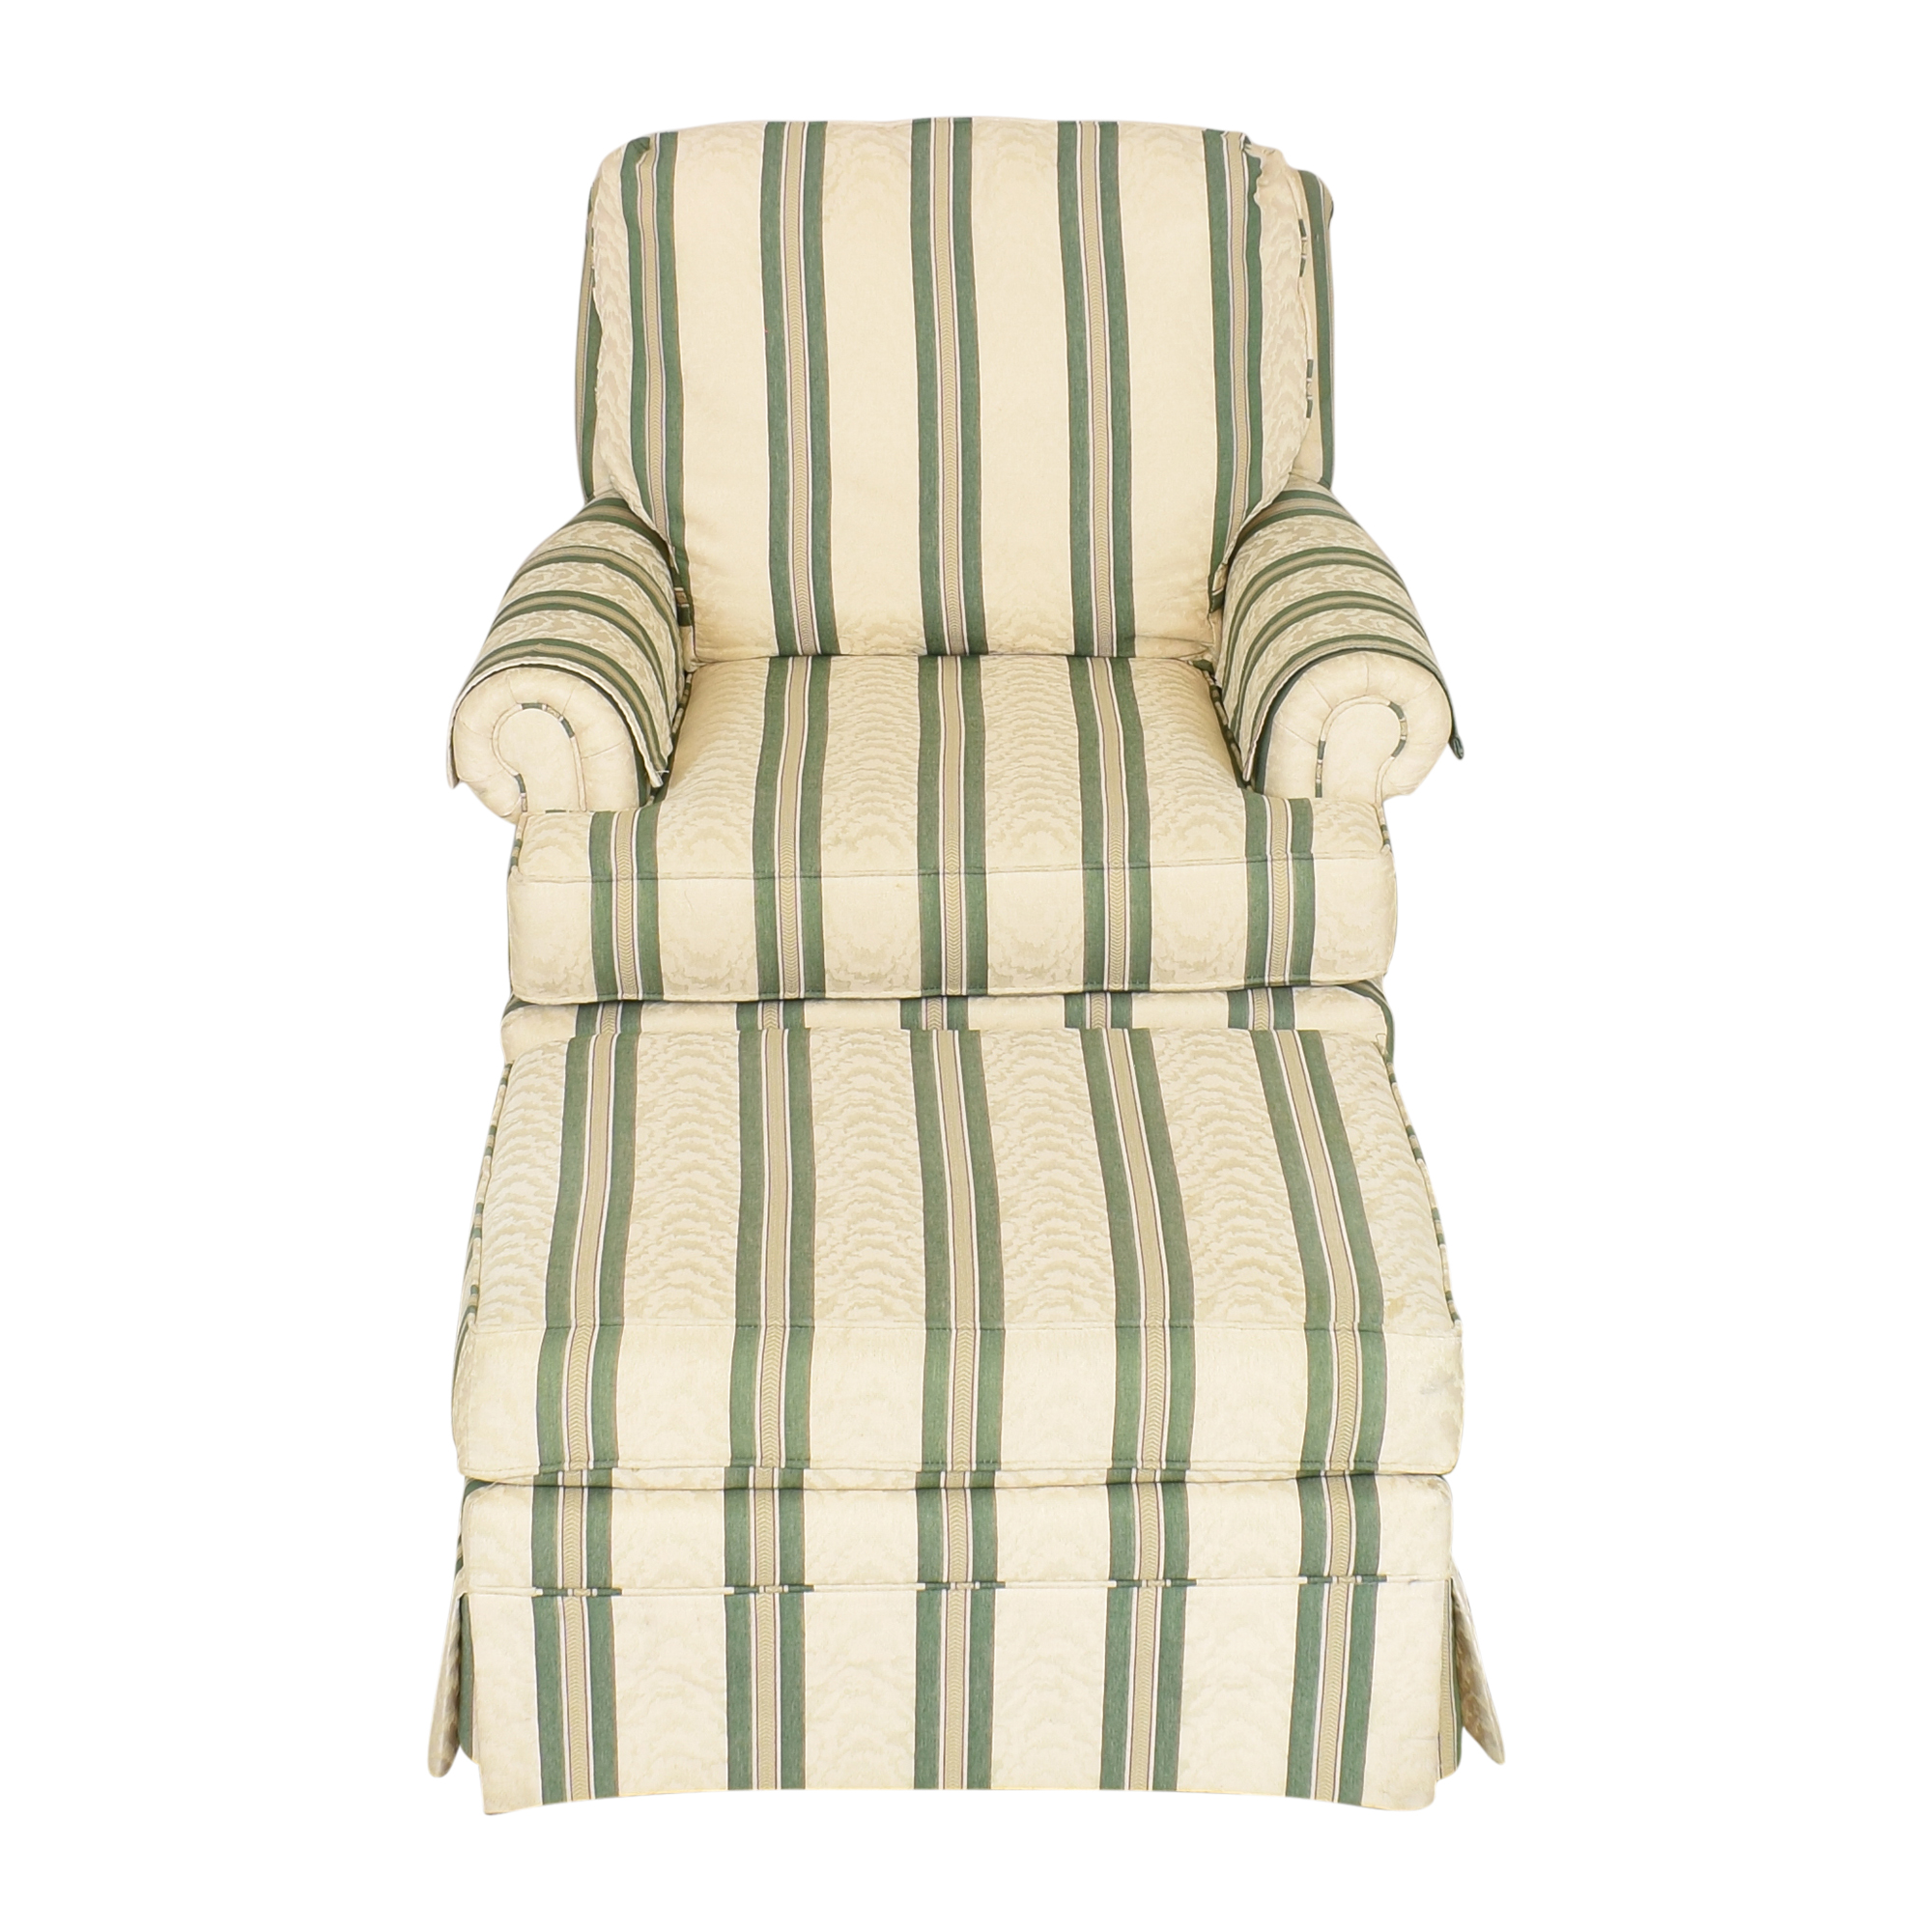 shop Pembrook Chair Pembrook Chair Upholstered Accent Chair and Ottoman online